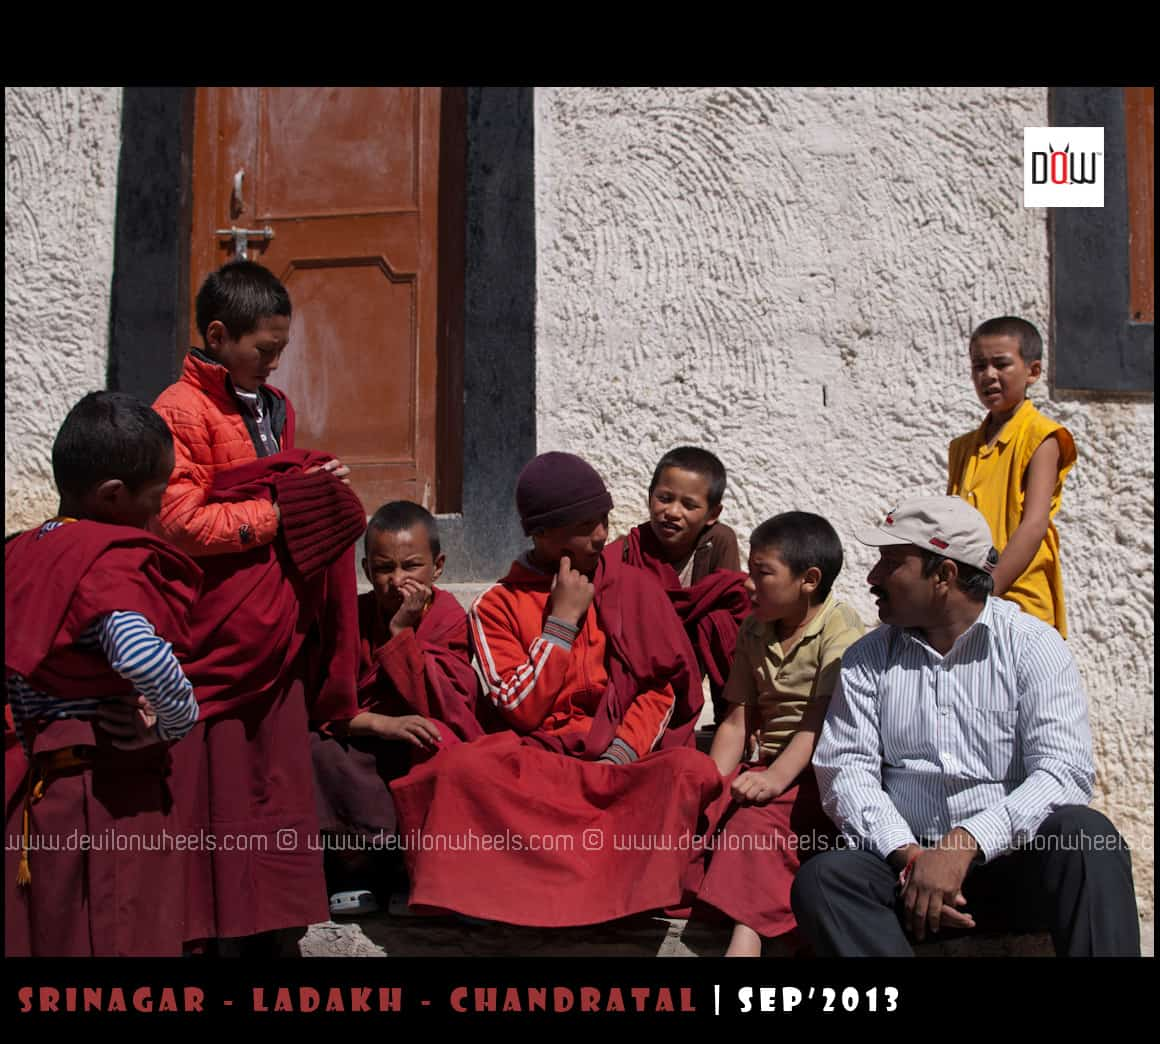 Jiwesh having candid time with Lama Kids at Lamayuru Monastery